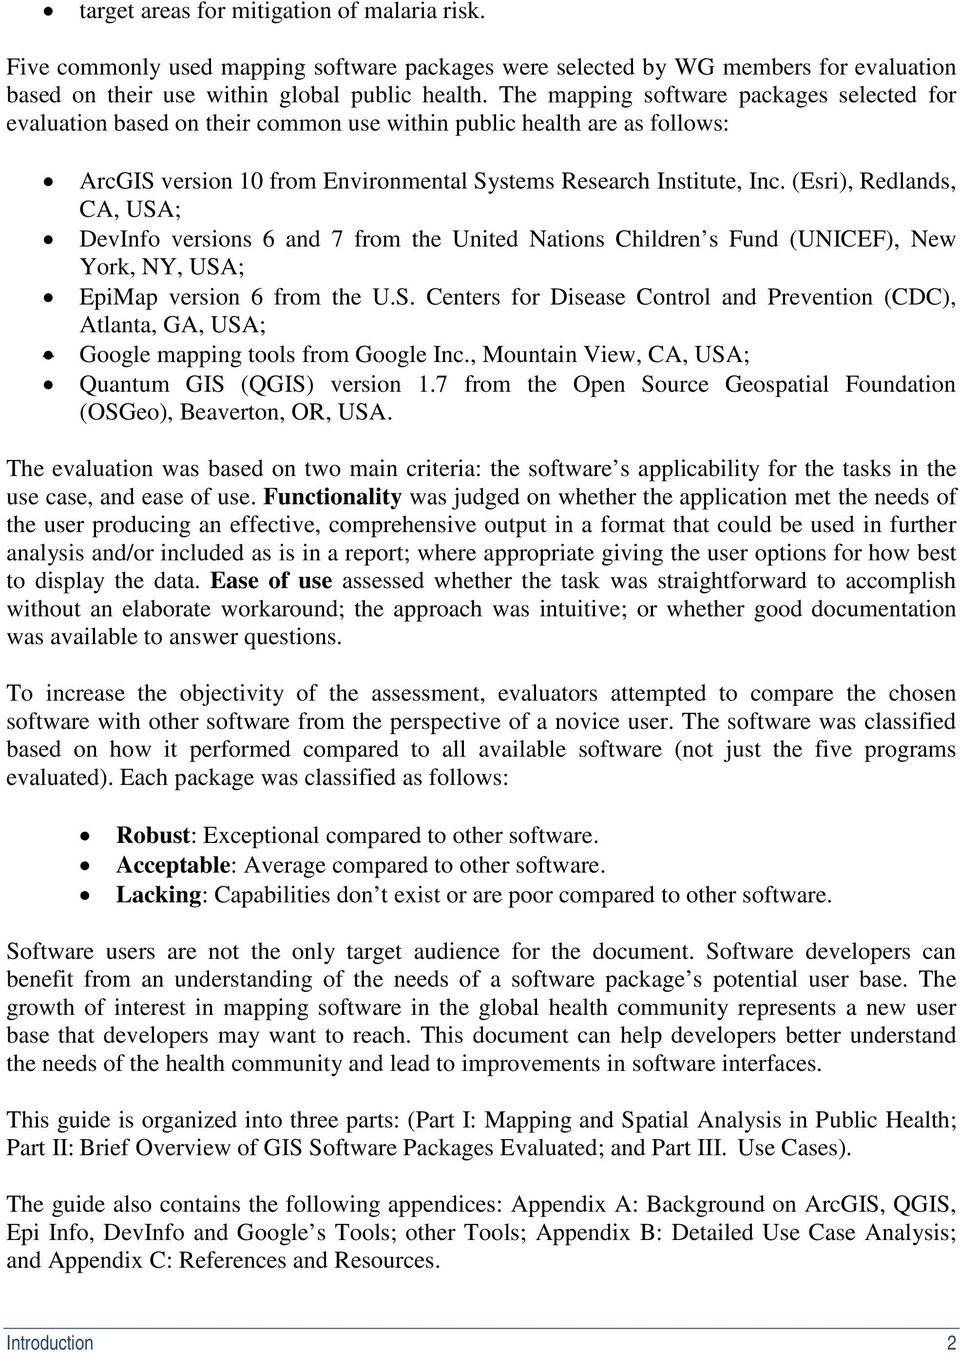 (Esri), Redlands, CA, USA; DevInfo versions 6 and 7 from the United Nations Children s Fund (UNICEF), New York, NY, USA; EpiMap version 6 from the U.S. Centers for Disease Control and Prevention (CDC), Atlanta, GA, USA; Google mapping tools from Google Inc.